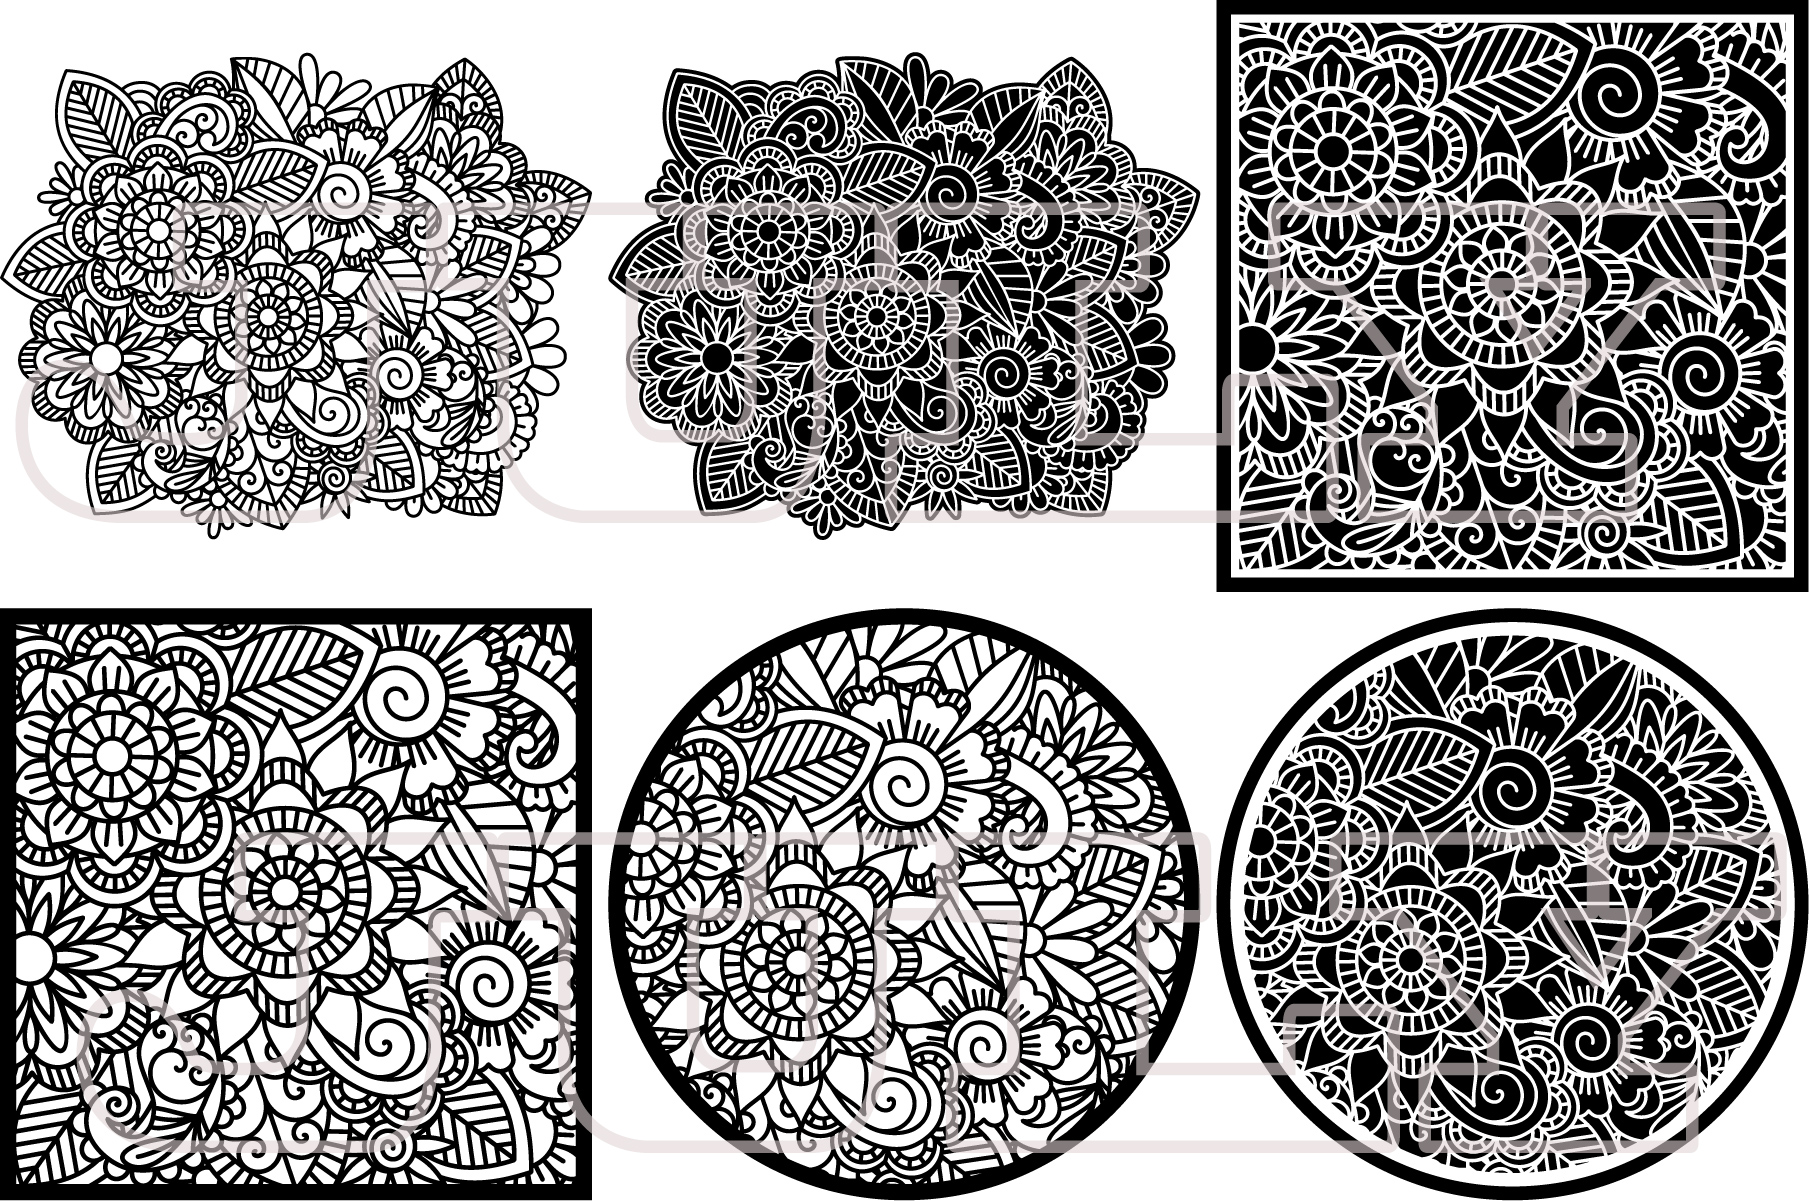 Floral Pattern, SVG, Flower Background, Zentangle, Template example image 2